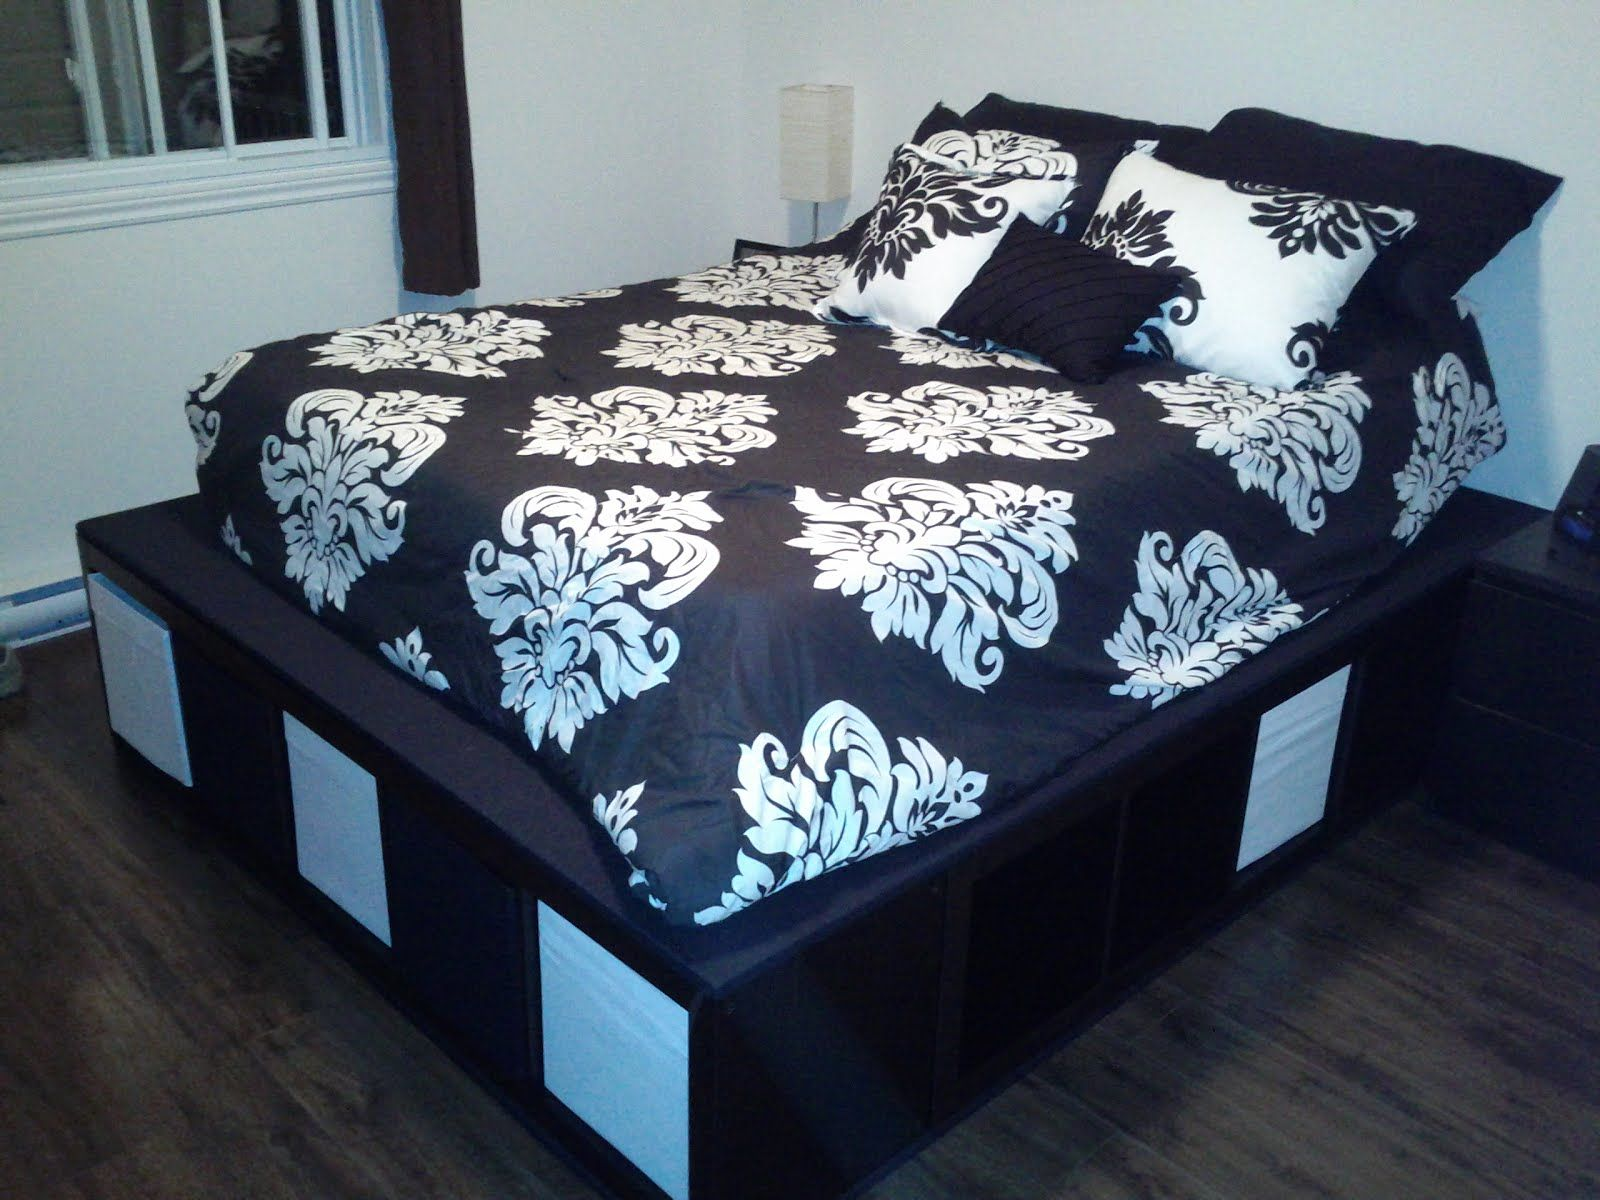 storage bed ikea hack. Materials: EXPEDIT Shelving Unit, 4 Plywood, 4X4, 5\u2032 Hinge, Black King Size Sheets Description: As We Live In A Condo Really Needed More Storage Space So Bed Ikea Hack